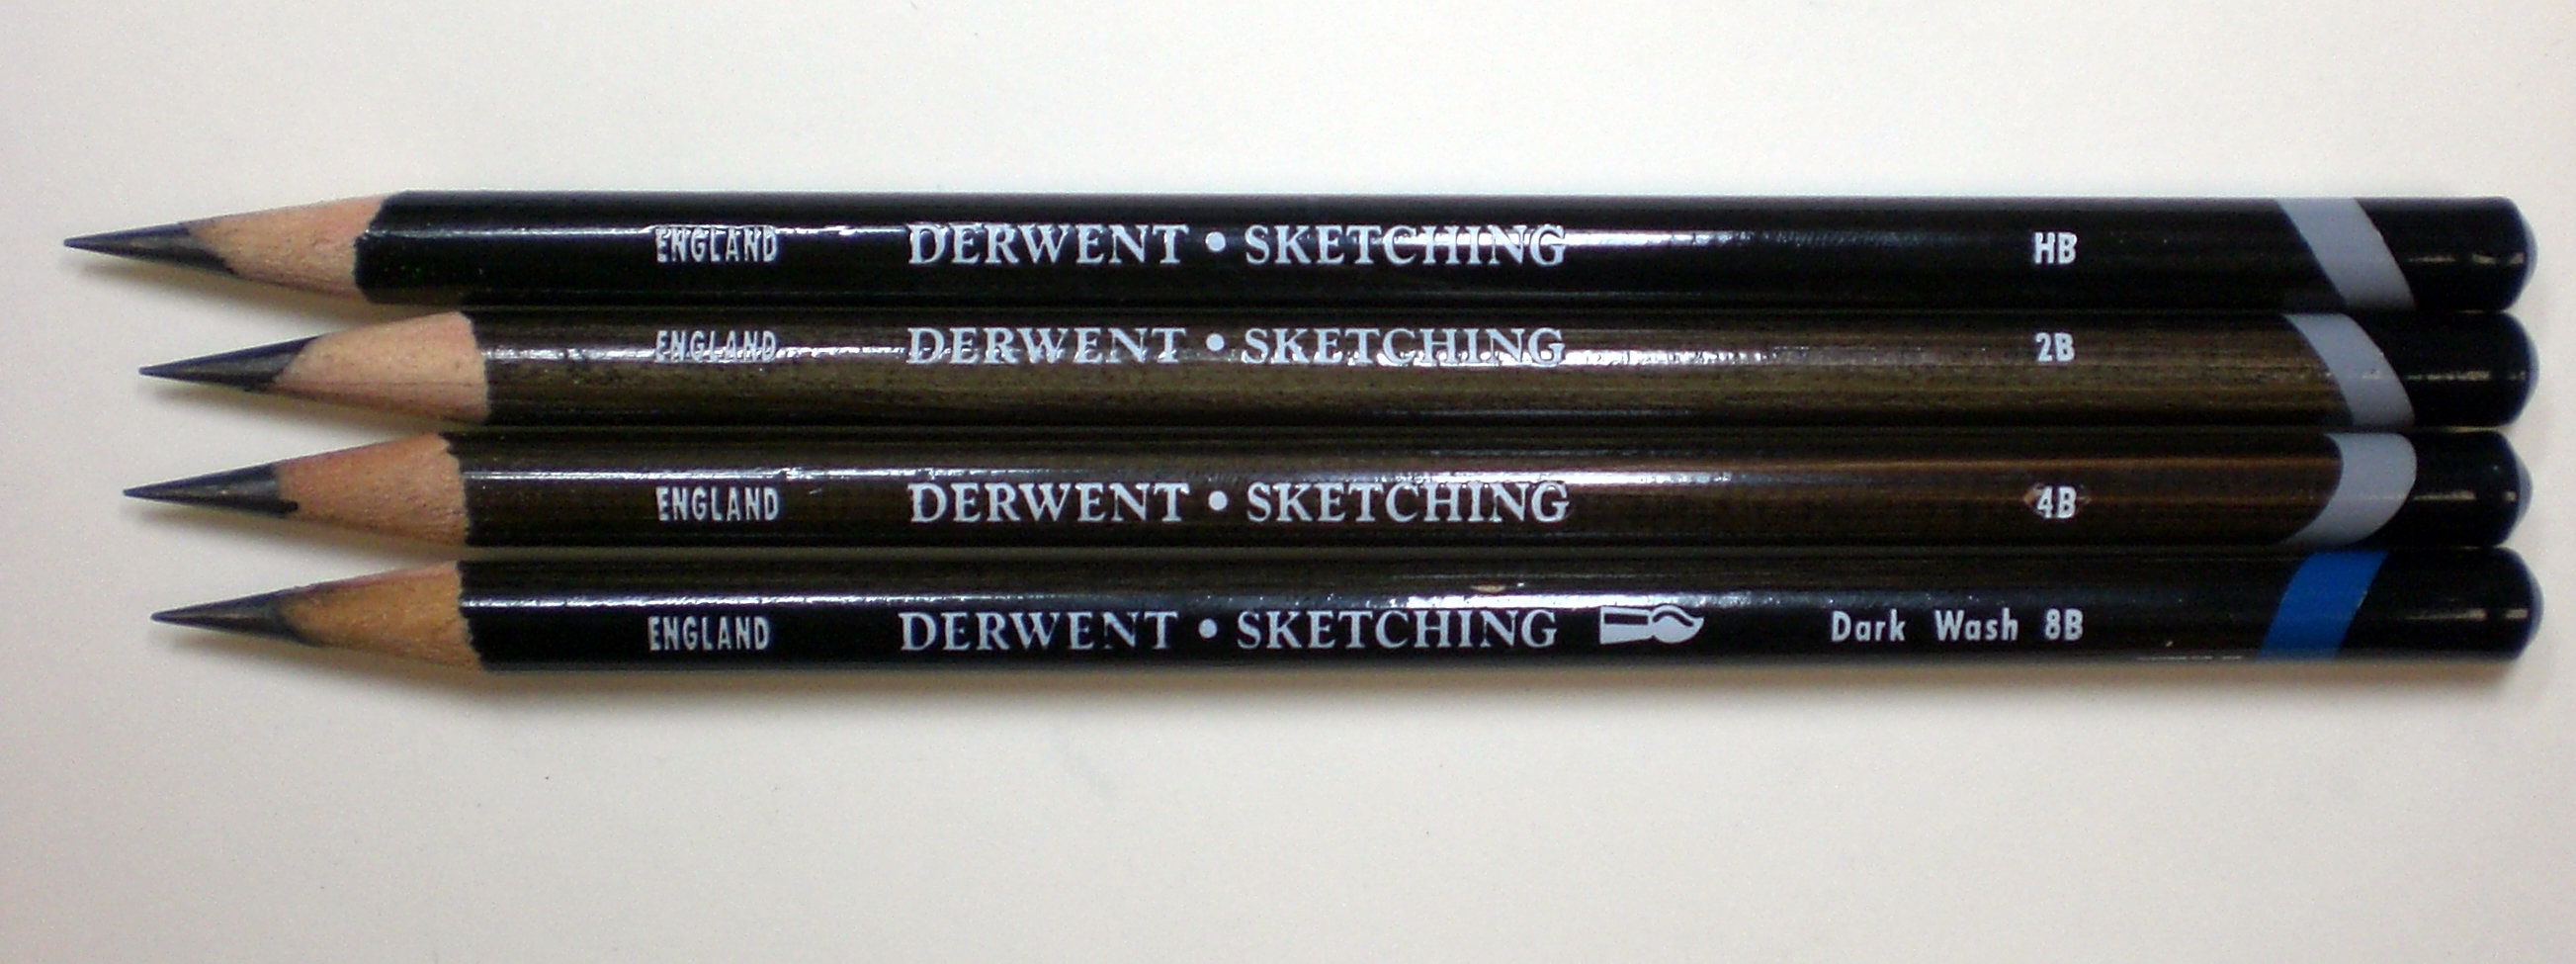 Best Pens For Design Sketching